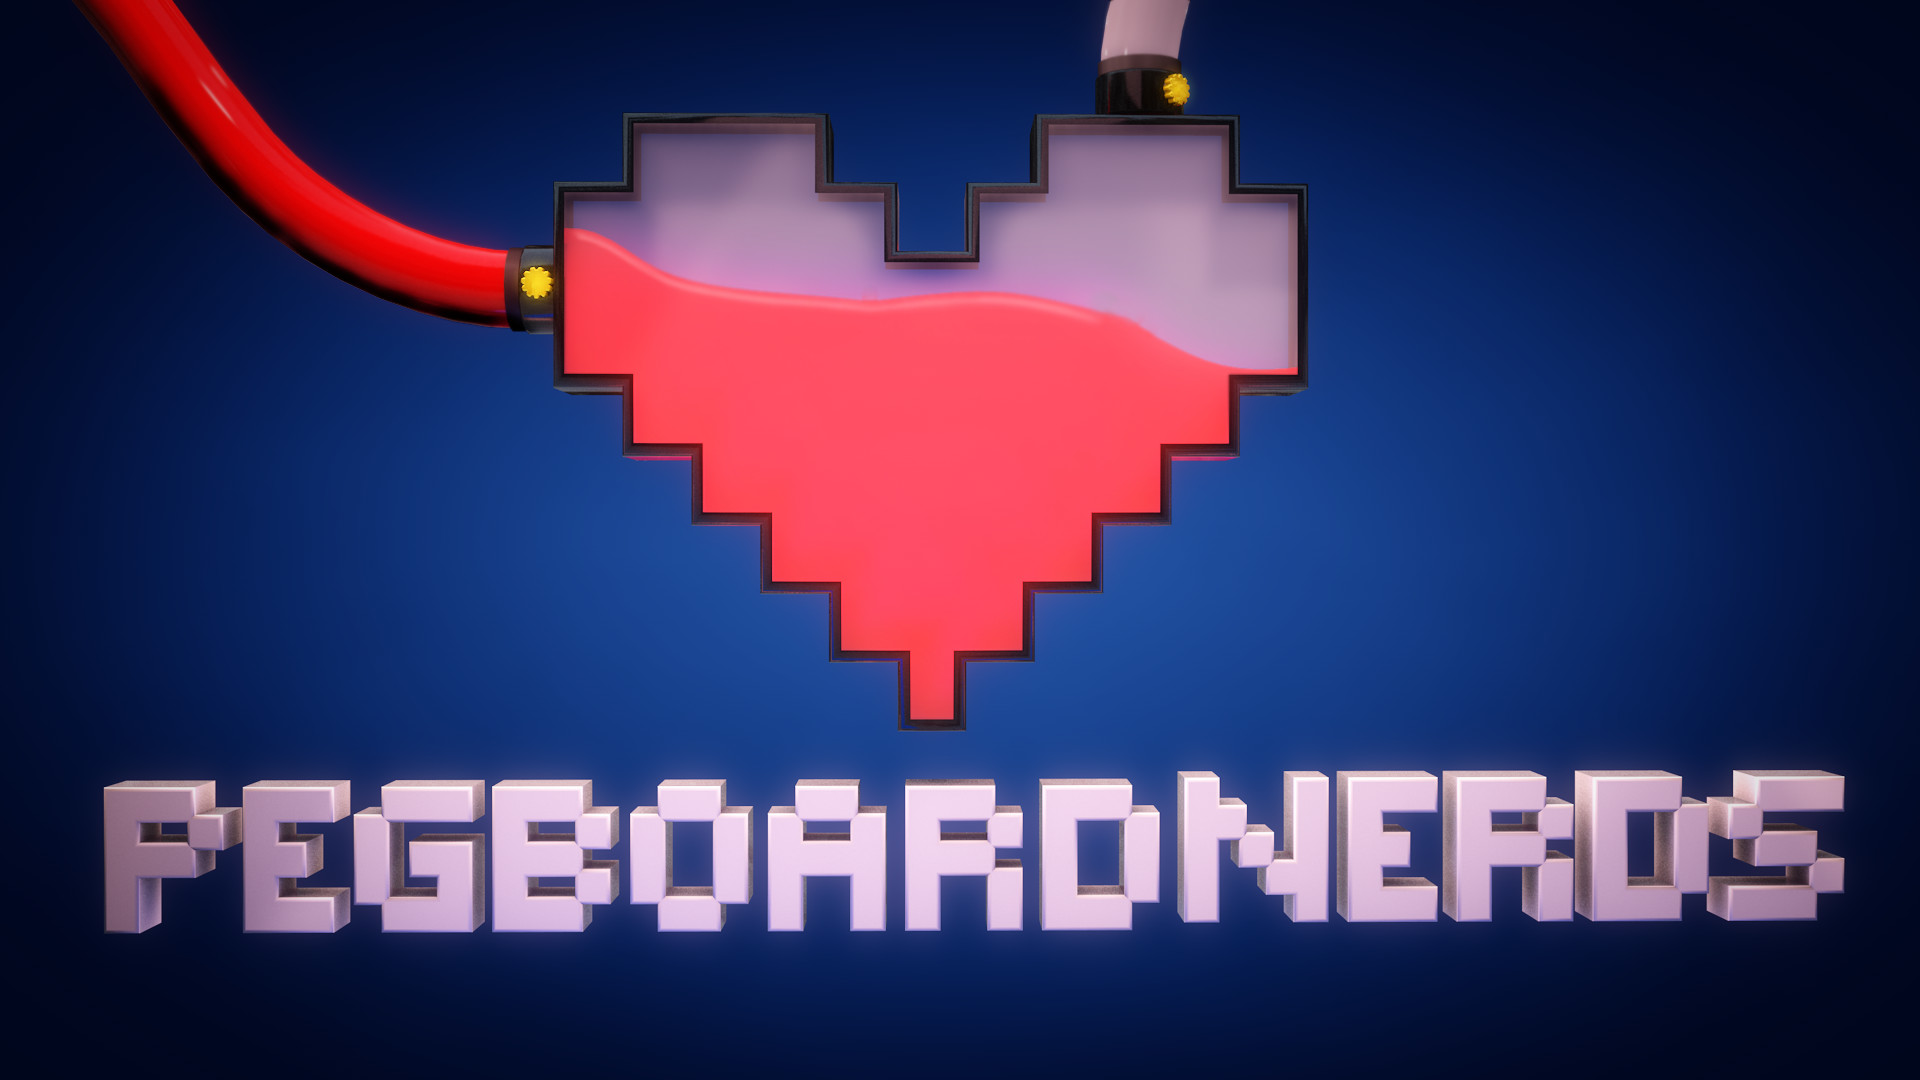 Res: 1920x1080, I made a Pegboard Nerds wallpaper.